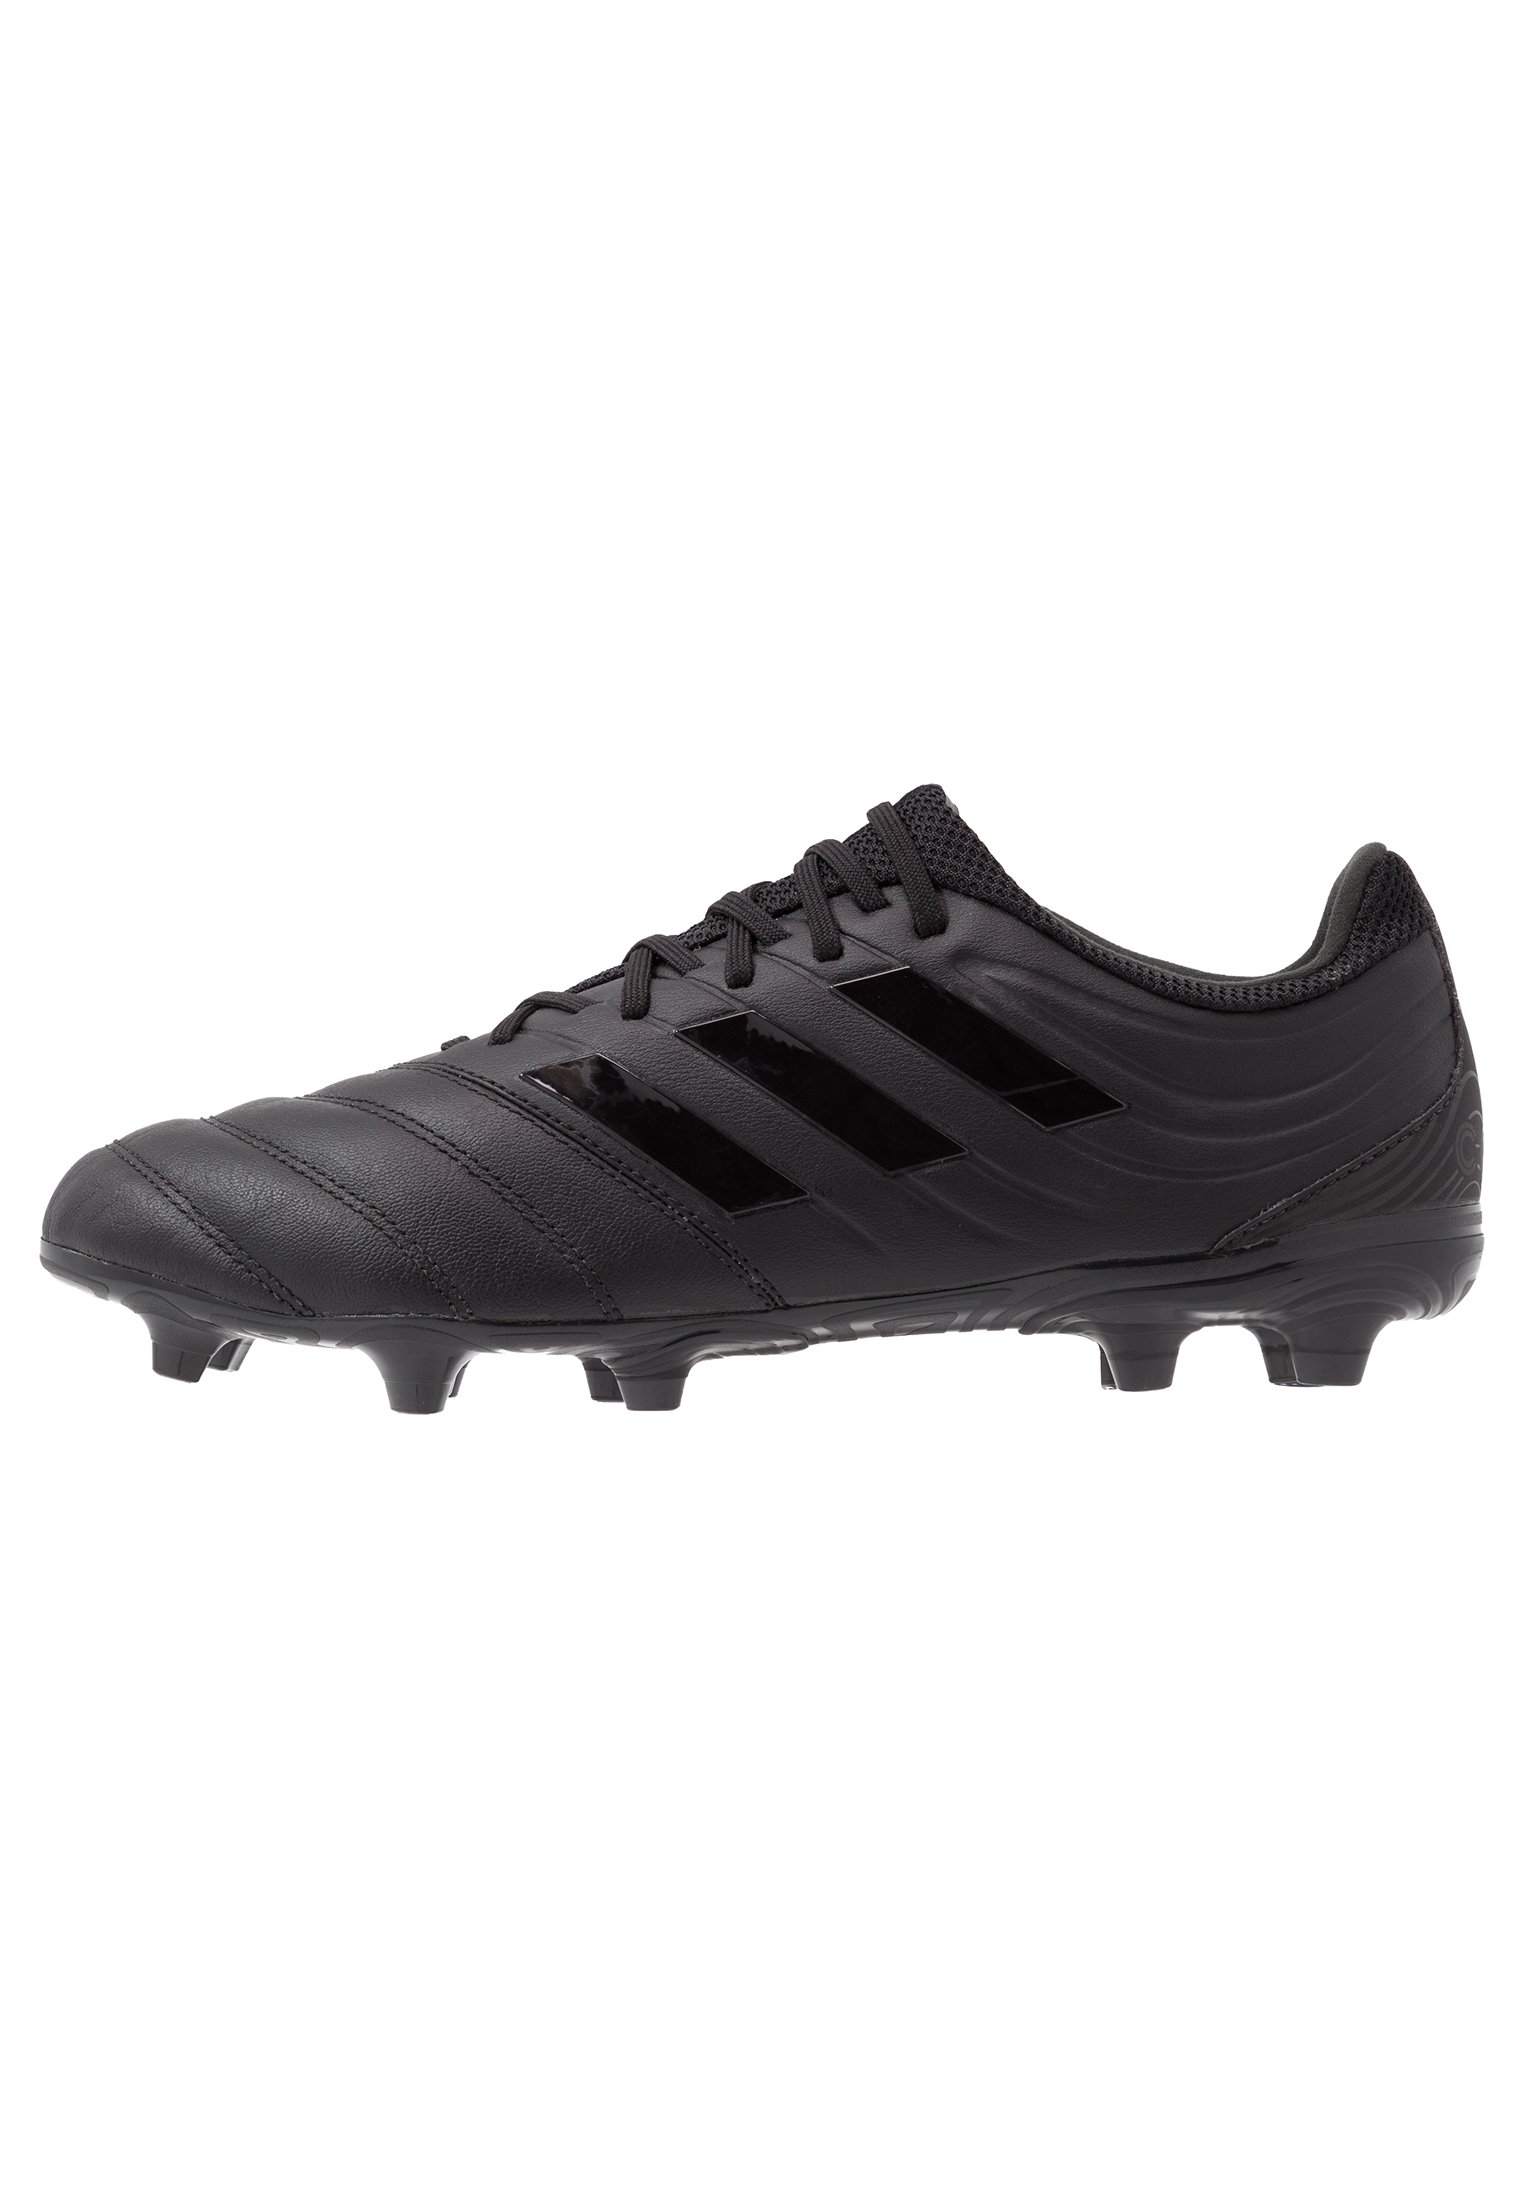 COPA 20.3 FG Chaussures de foot à crampons core blackgrey